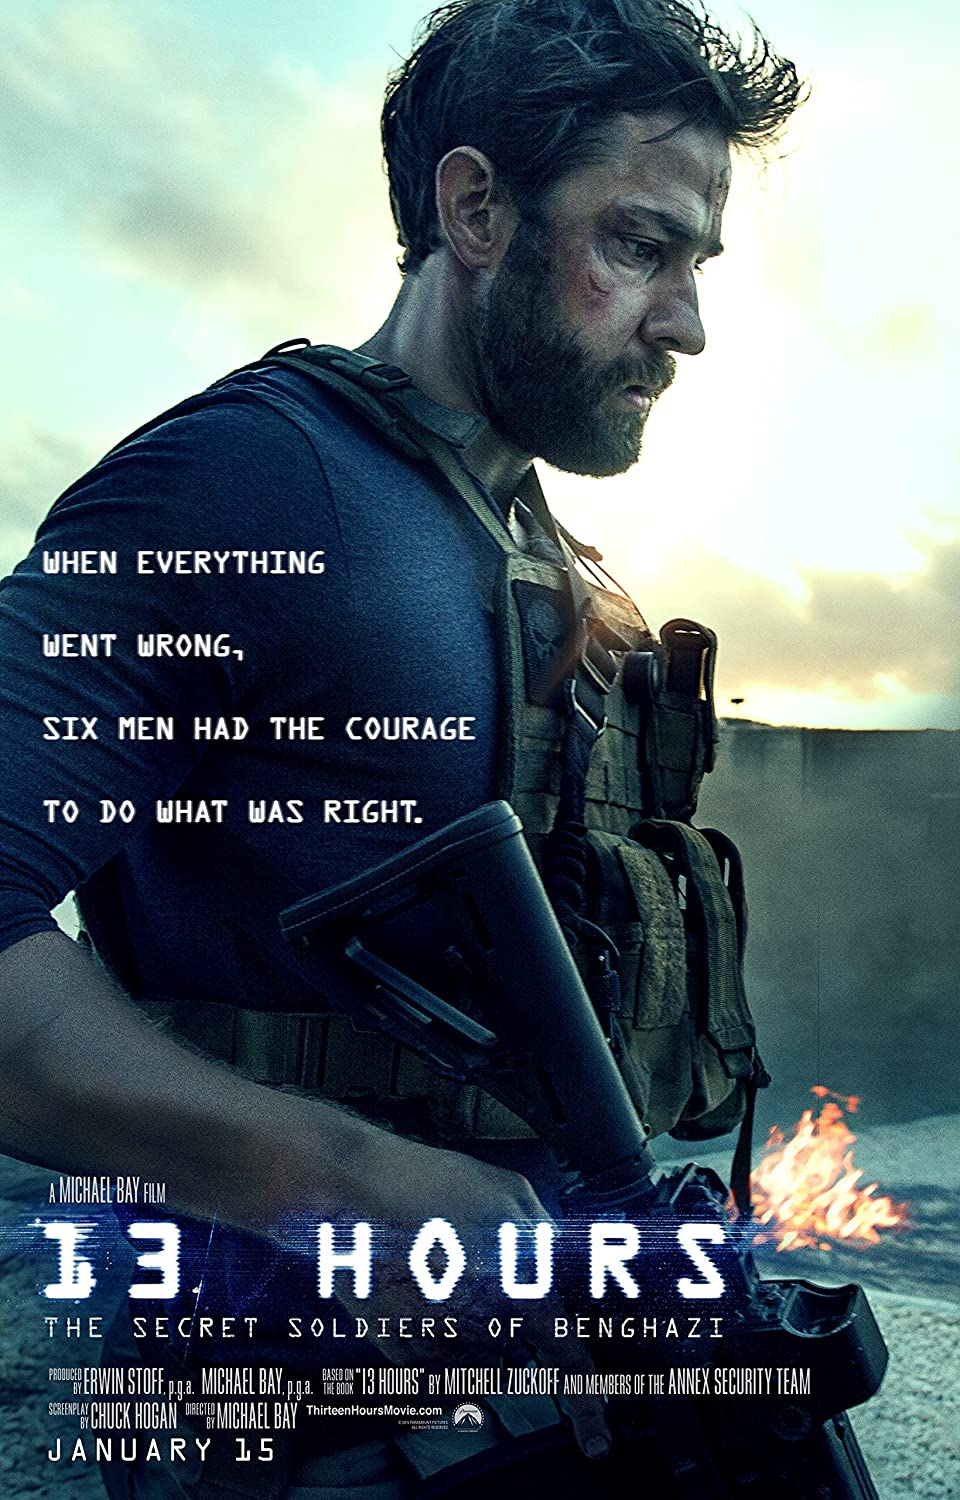 13 Hours: The Secret Soldiers of Benghazi - Movie Poster (2016), Size 12 x 18